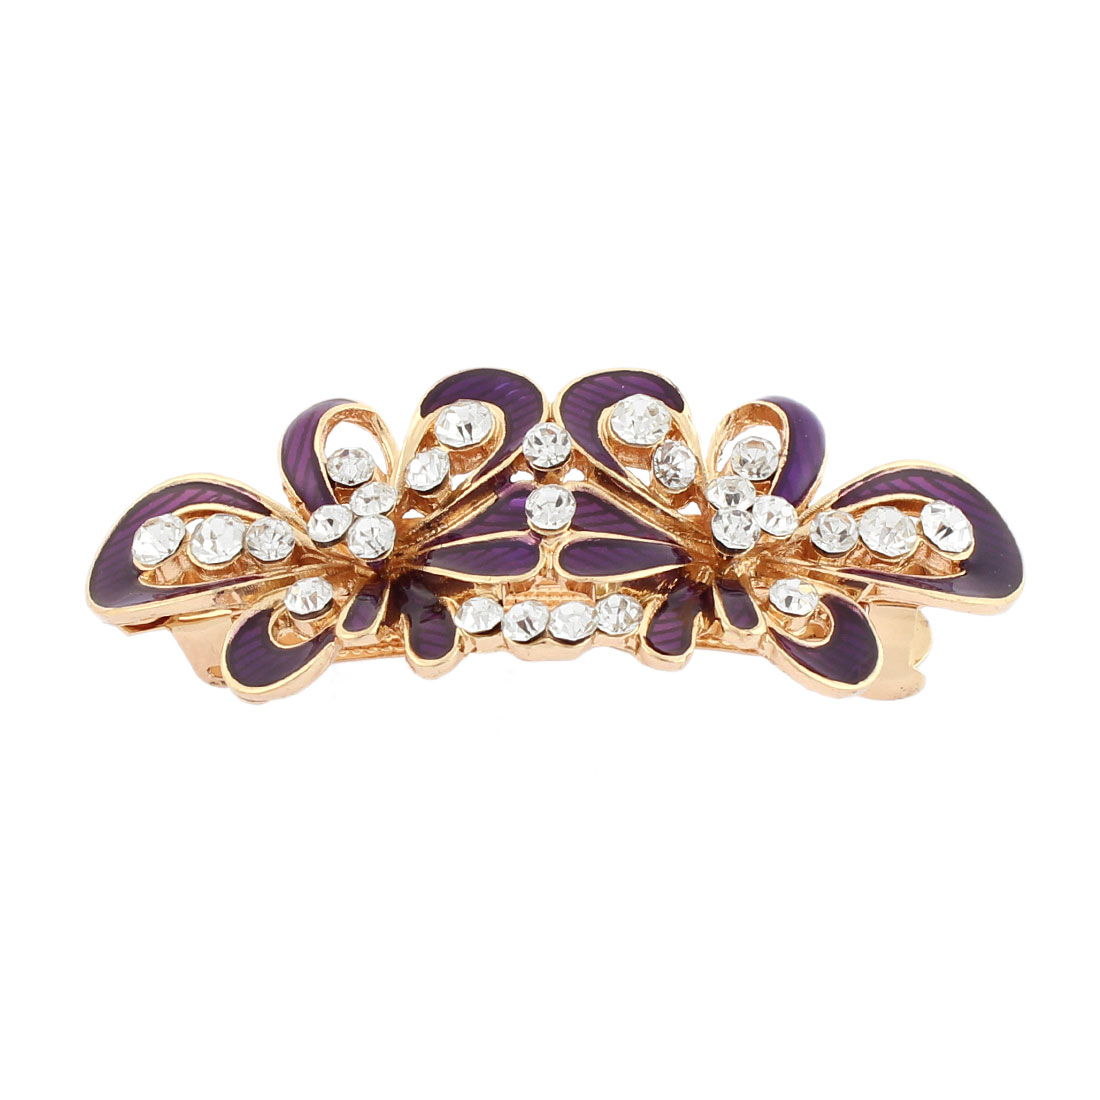 Women Plastic Rhinestone Inlaid Flower Design French Barrette Style Metal Hair Clip Hairpin Gold Tone Purple